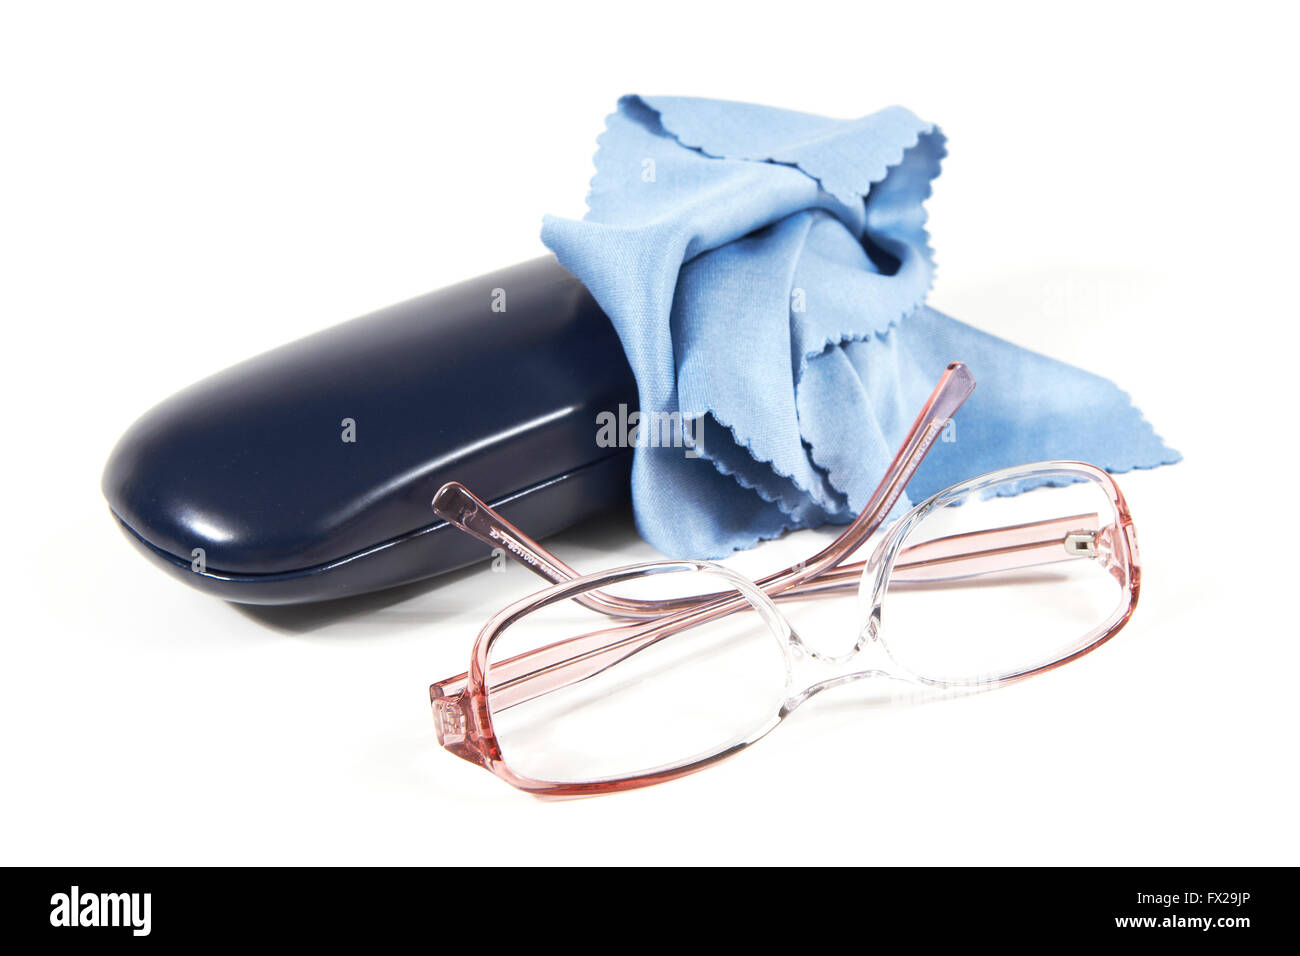 Eyeglasses, case and cloth on a white background - Stock Image